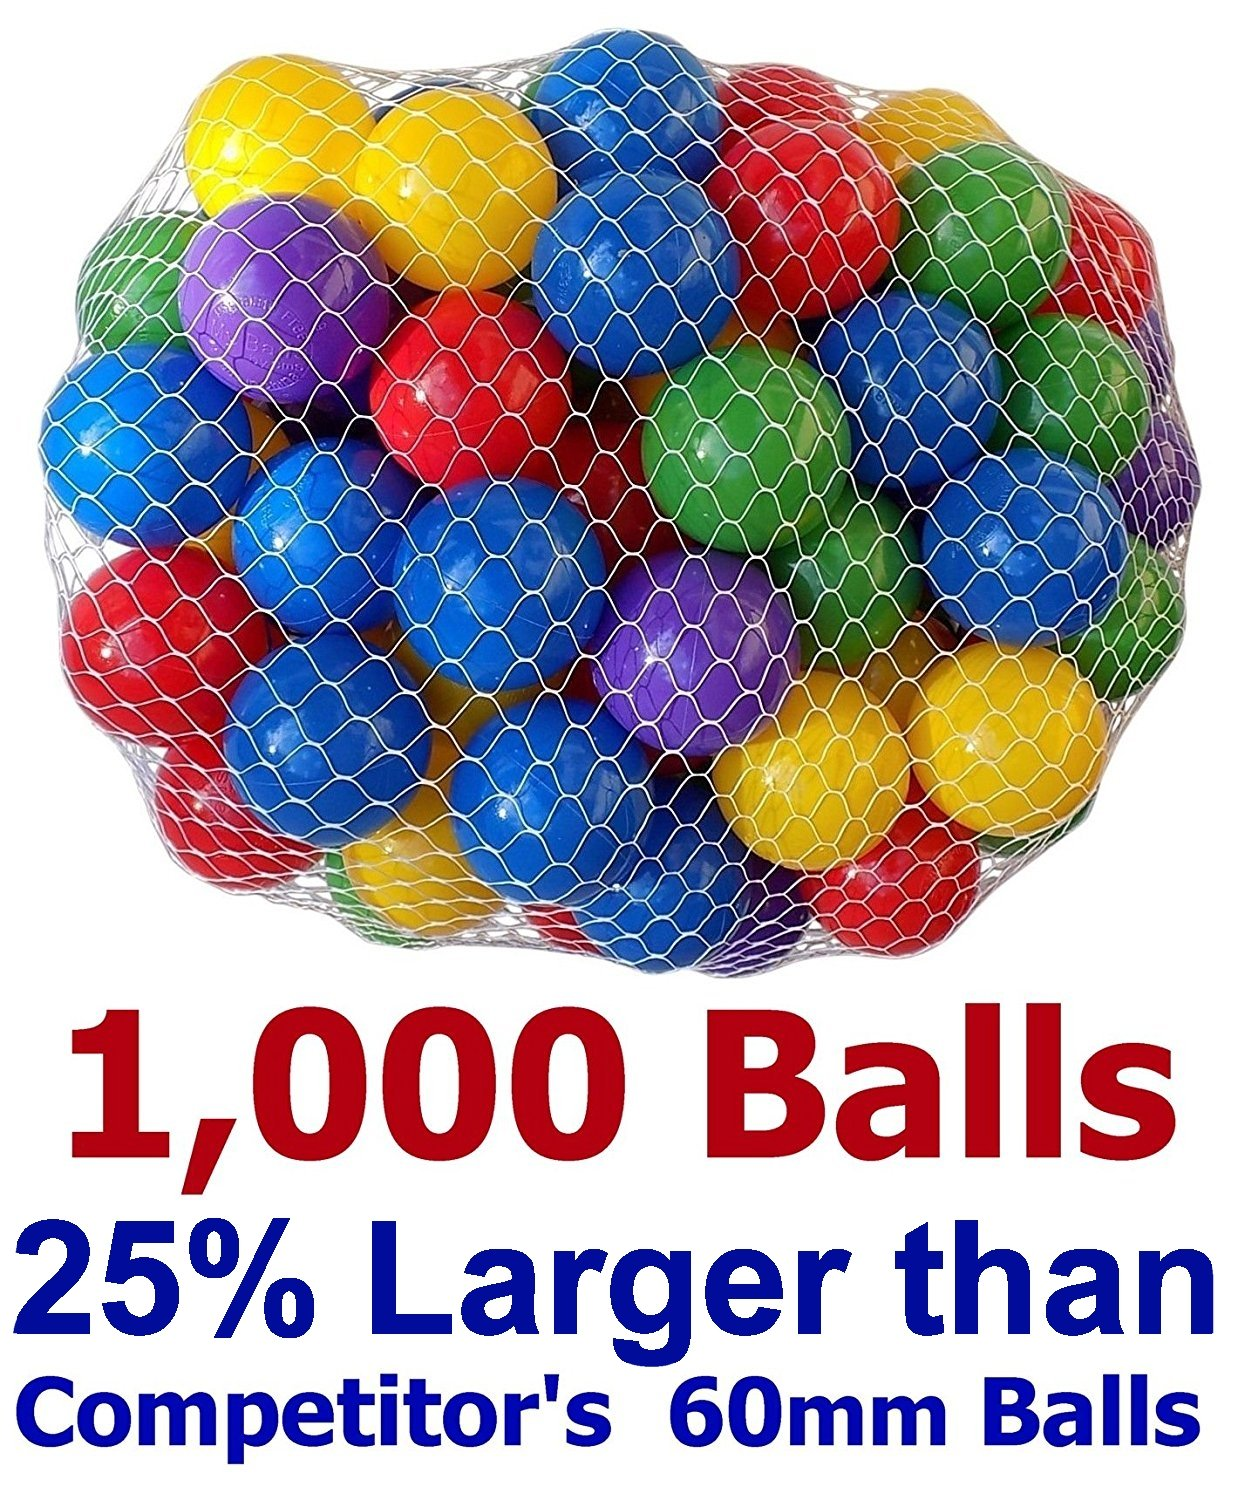 My Balls Pack of 1000 pcs 2.5'' True to Size Balls Phthalate Free BPA Free Crush Proof Plastic Balls in 5 Bright Colors by My Balls (Image #1)